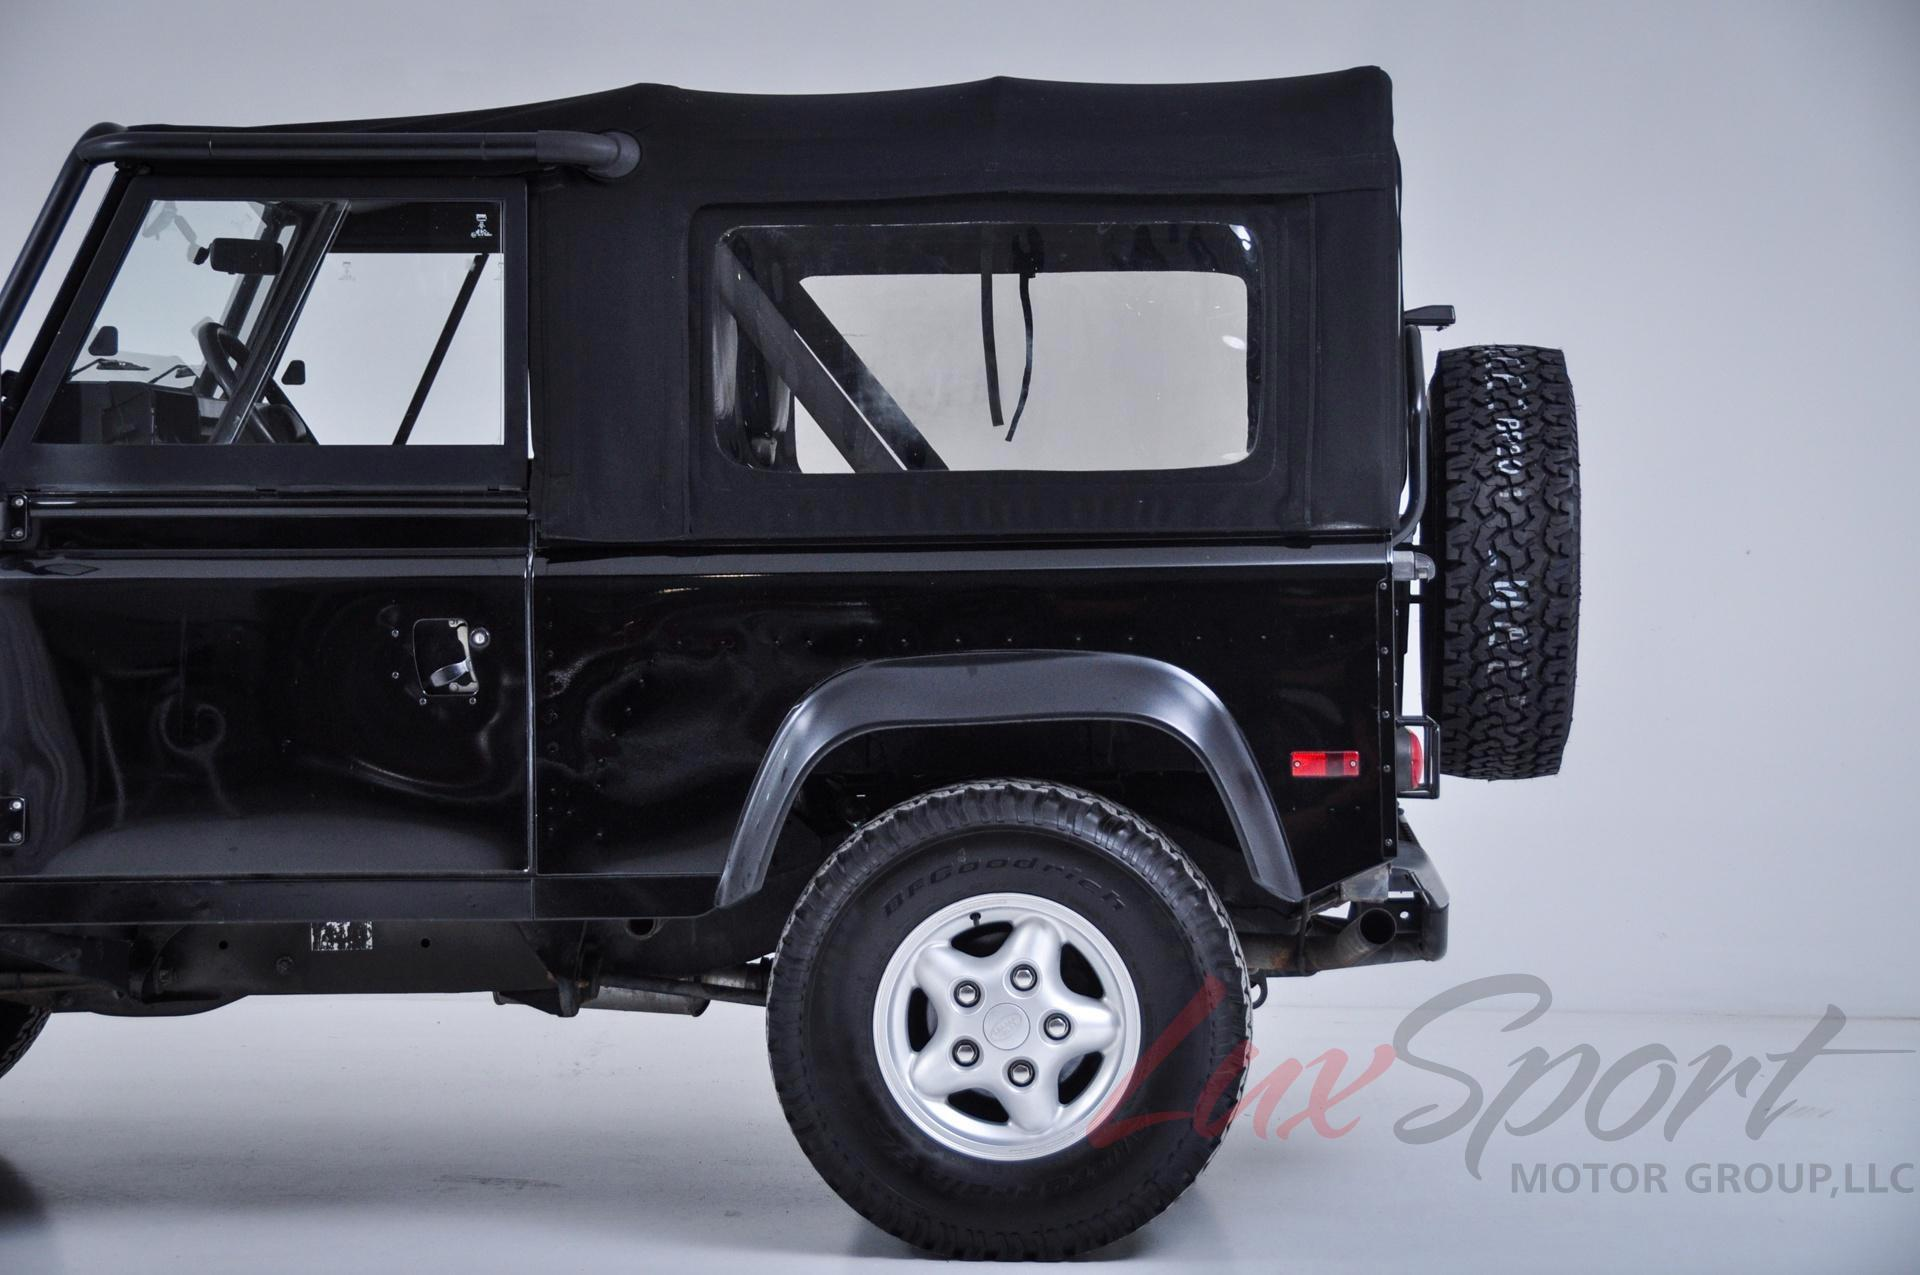 1997 Land Rover Defender 90 Open Top Stock for sale near